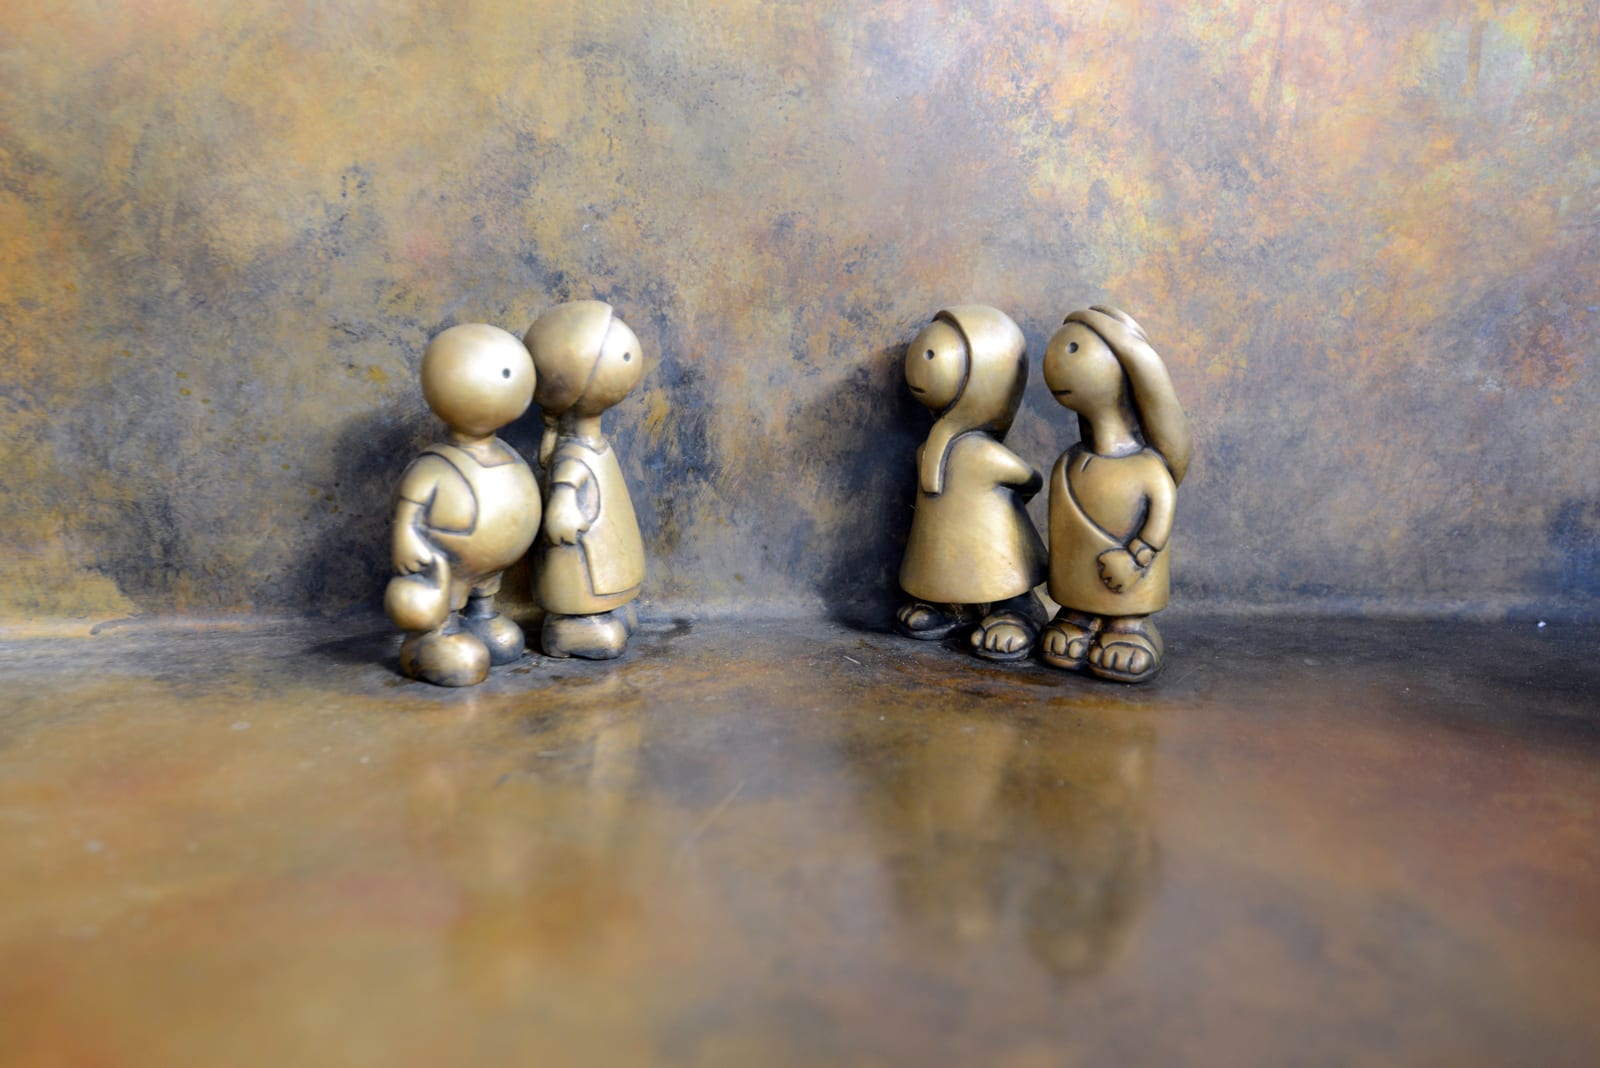 Other Worlds by Tom Otterness seen at Hamad International Airport ...